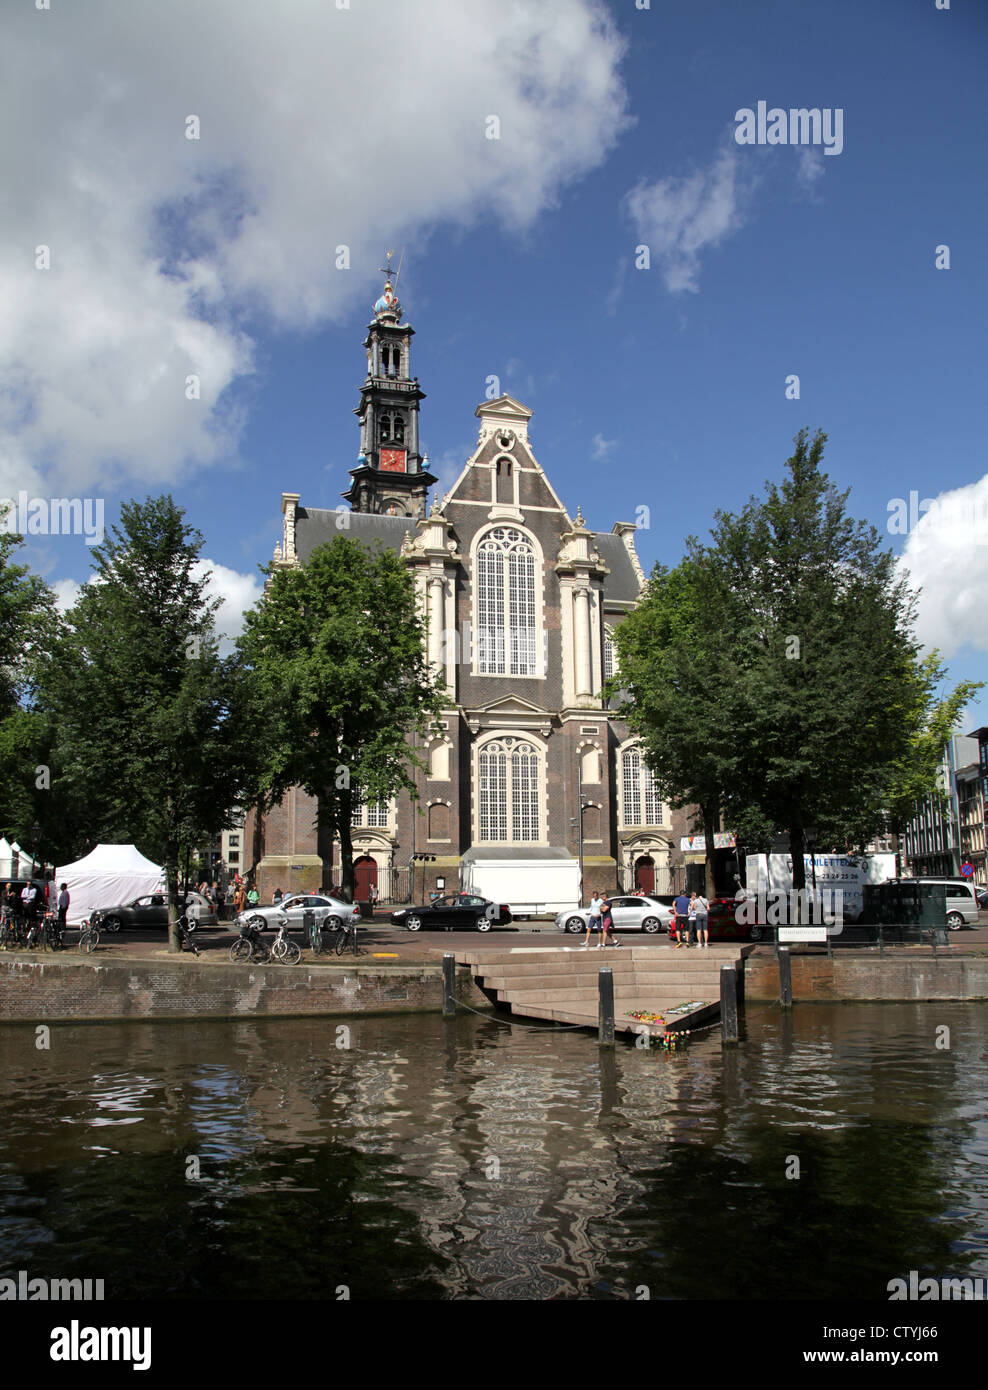 Amsterdam.L'église Wester.Westerkerk.Canaux.Homomonument. Photo Stock